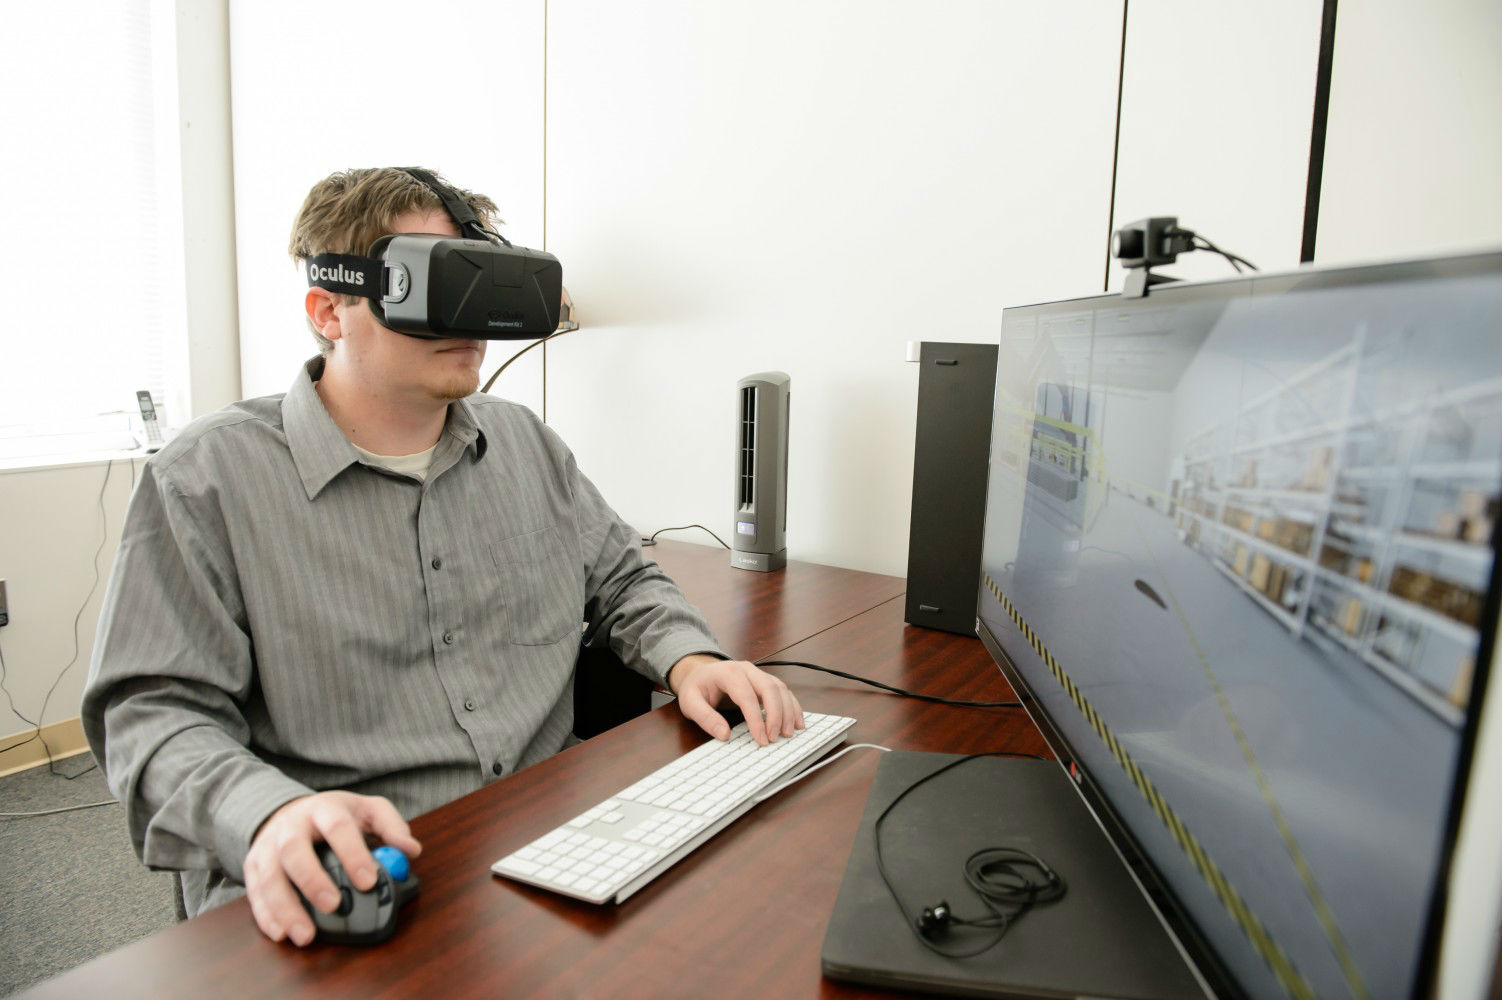 Virtual reality is incorporated into some of the EducationWorkforce courses. (Photo/Provided)